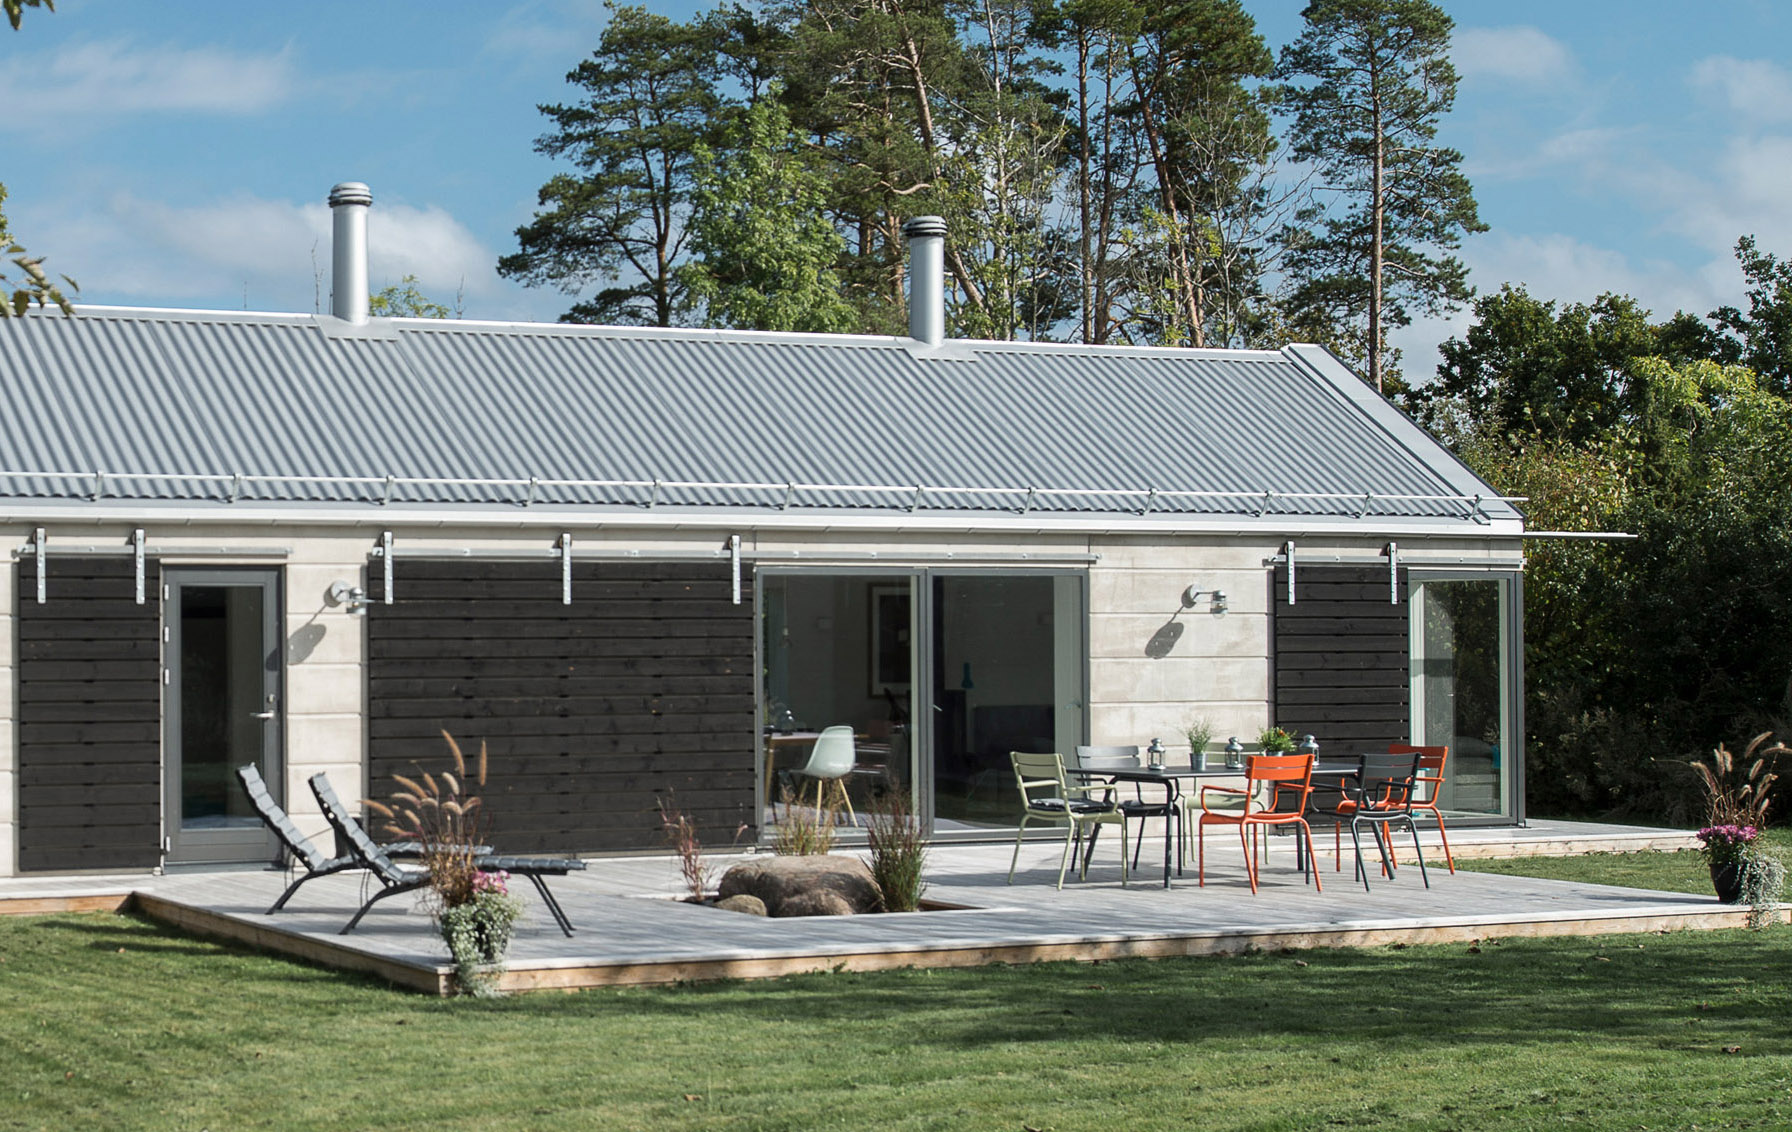 House KD made from GreenCoat steel